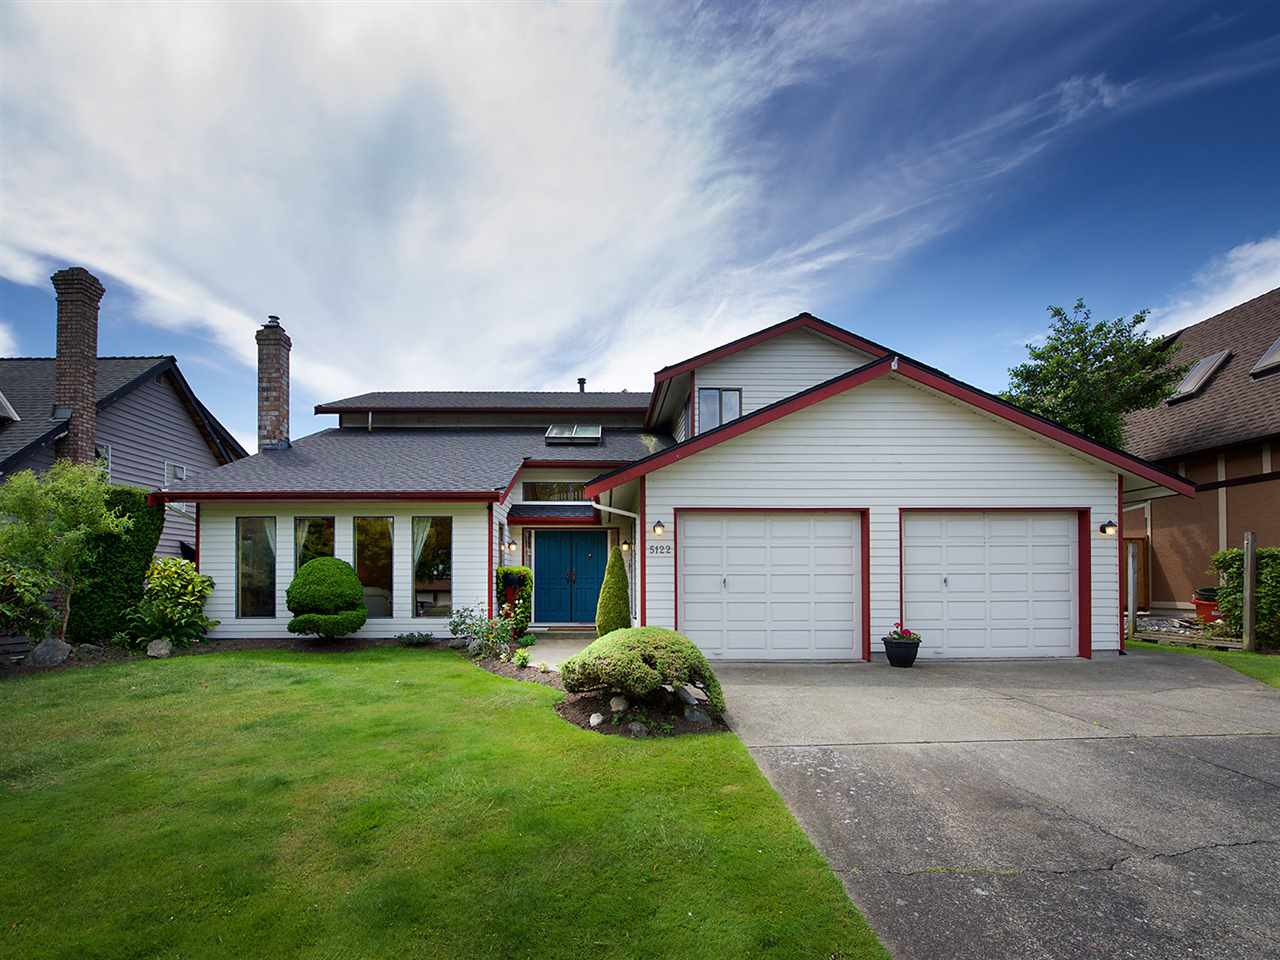 "Main Photo: 5122 2A Avenue in Delta: Pebble Hill House for sale in ""PEBBLE HILL"" (Tsawwassen)  : MLS®# R2077754"